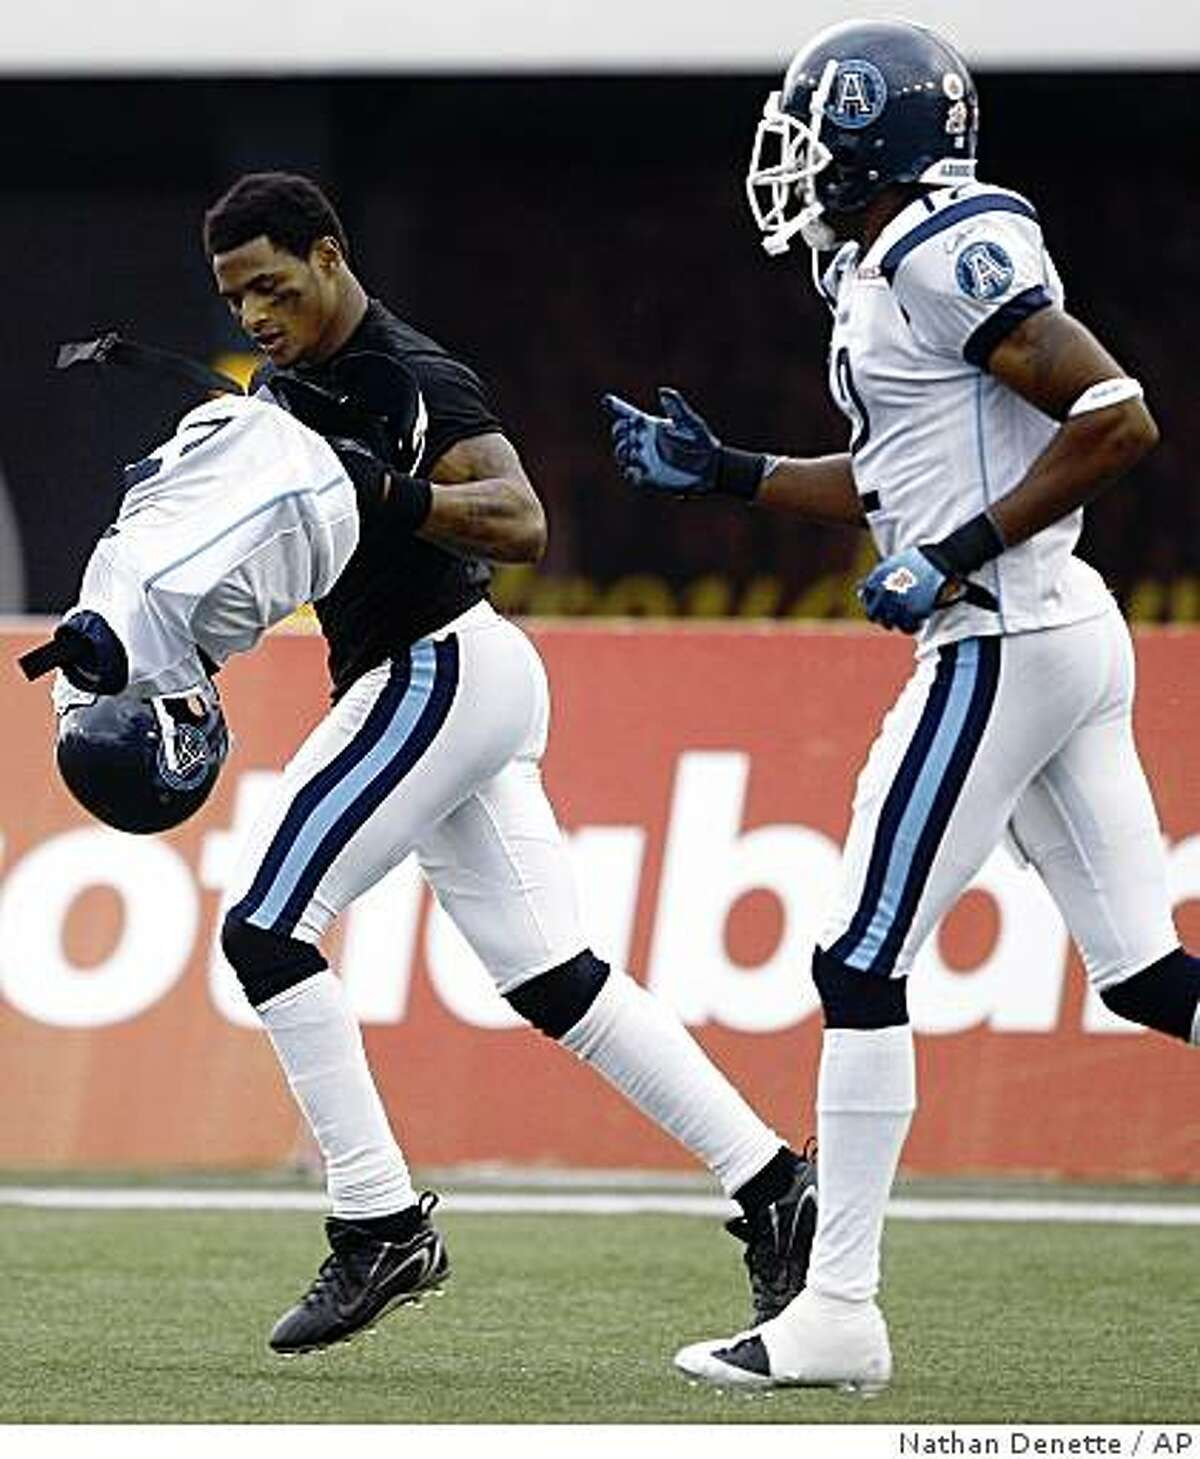 In this photo taken Wednesday, July 1, 2009, Toronto Argonauts Arland Bruce III, left, carries his football gear off the field as teammate Reggie McNeal, right, watches on after celebrating his touch down against the Hamilton Tiger-Cats during first half of a CFL football game in Hamilton, Ont. After scoring on a 21-yard pass from Kerry Joseph to put Toronto ahead 6-0, Bruce removed his helmet, shoulder pads and uniform top, then laid down in the end zone. Bruce said he was paying tribute to Michael Jackson. The CFL called it